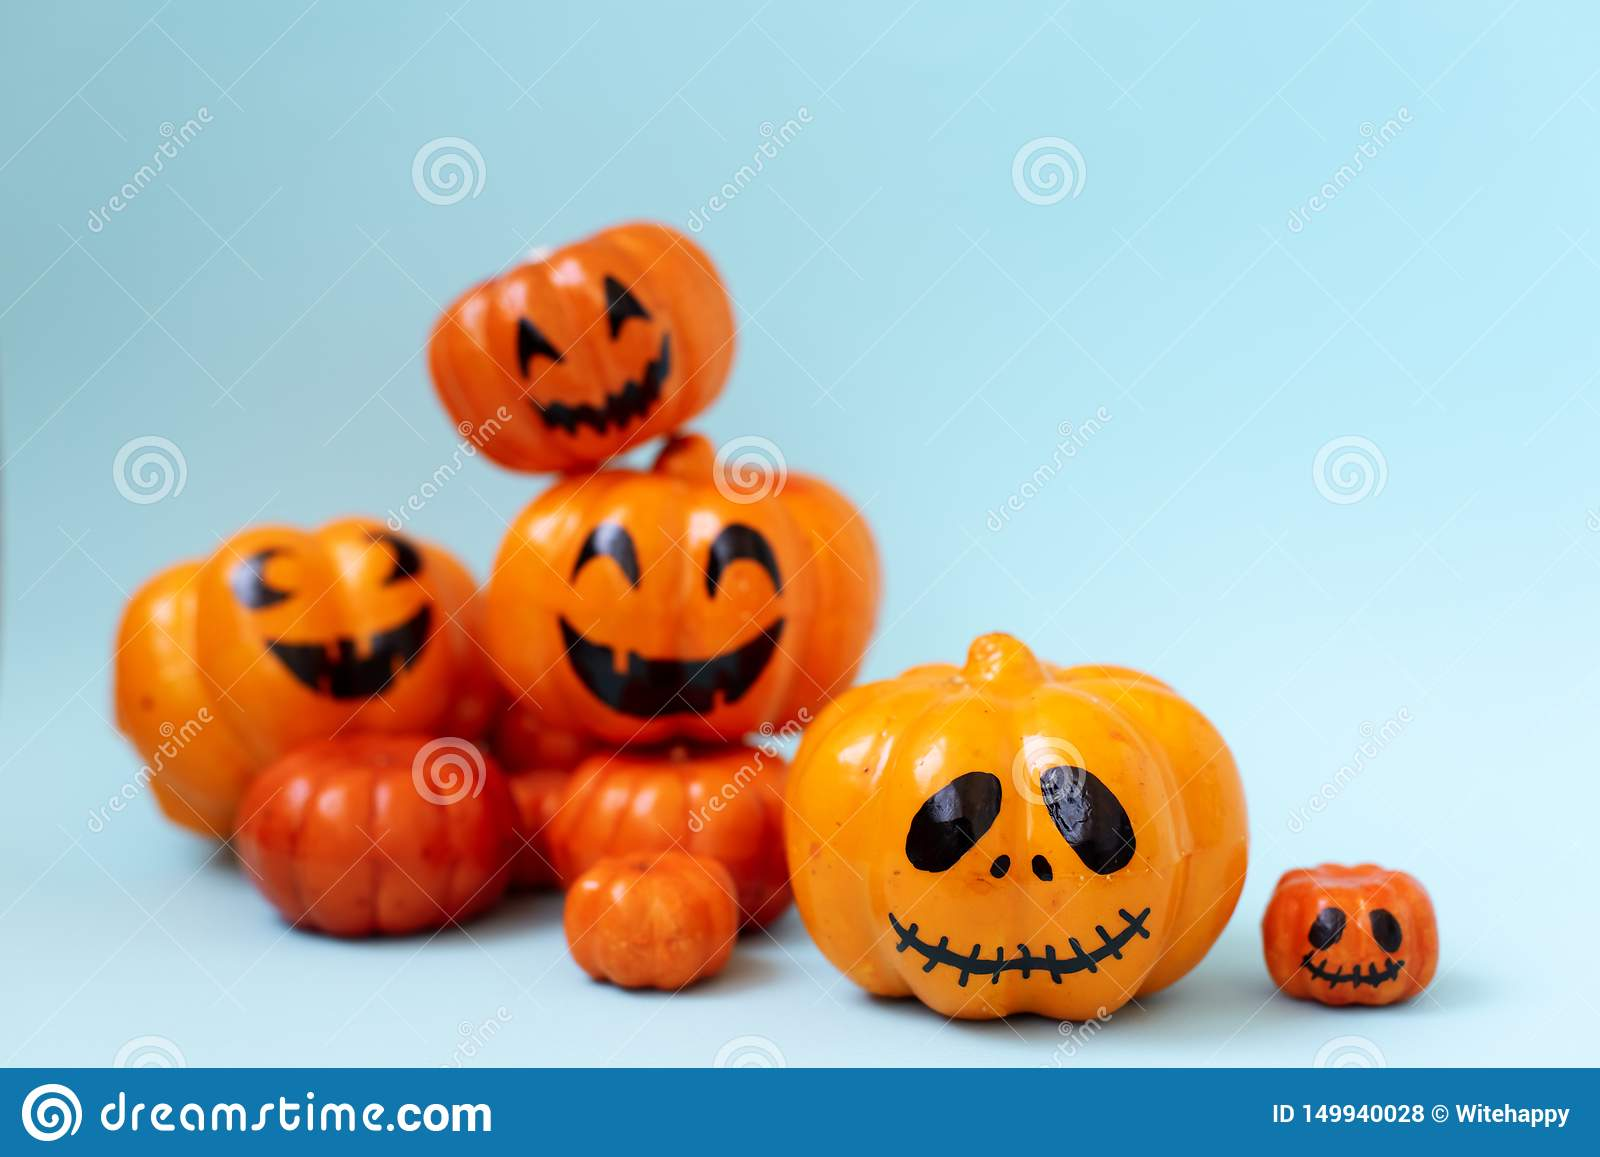 Halloween glitter pumpkin jack o lantern decor with funny faces